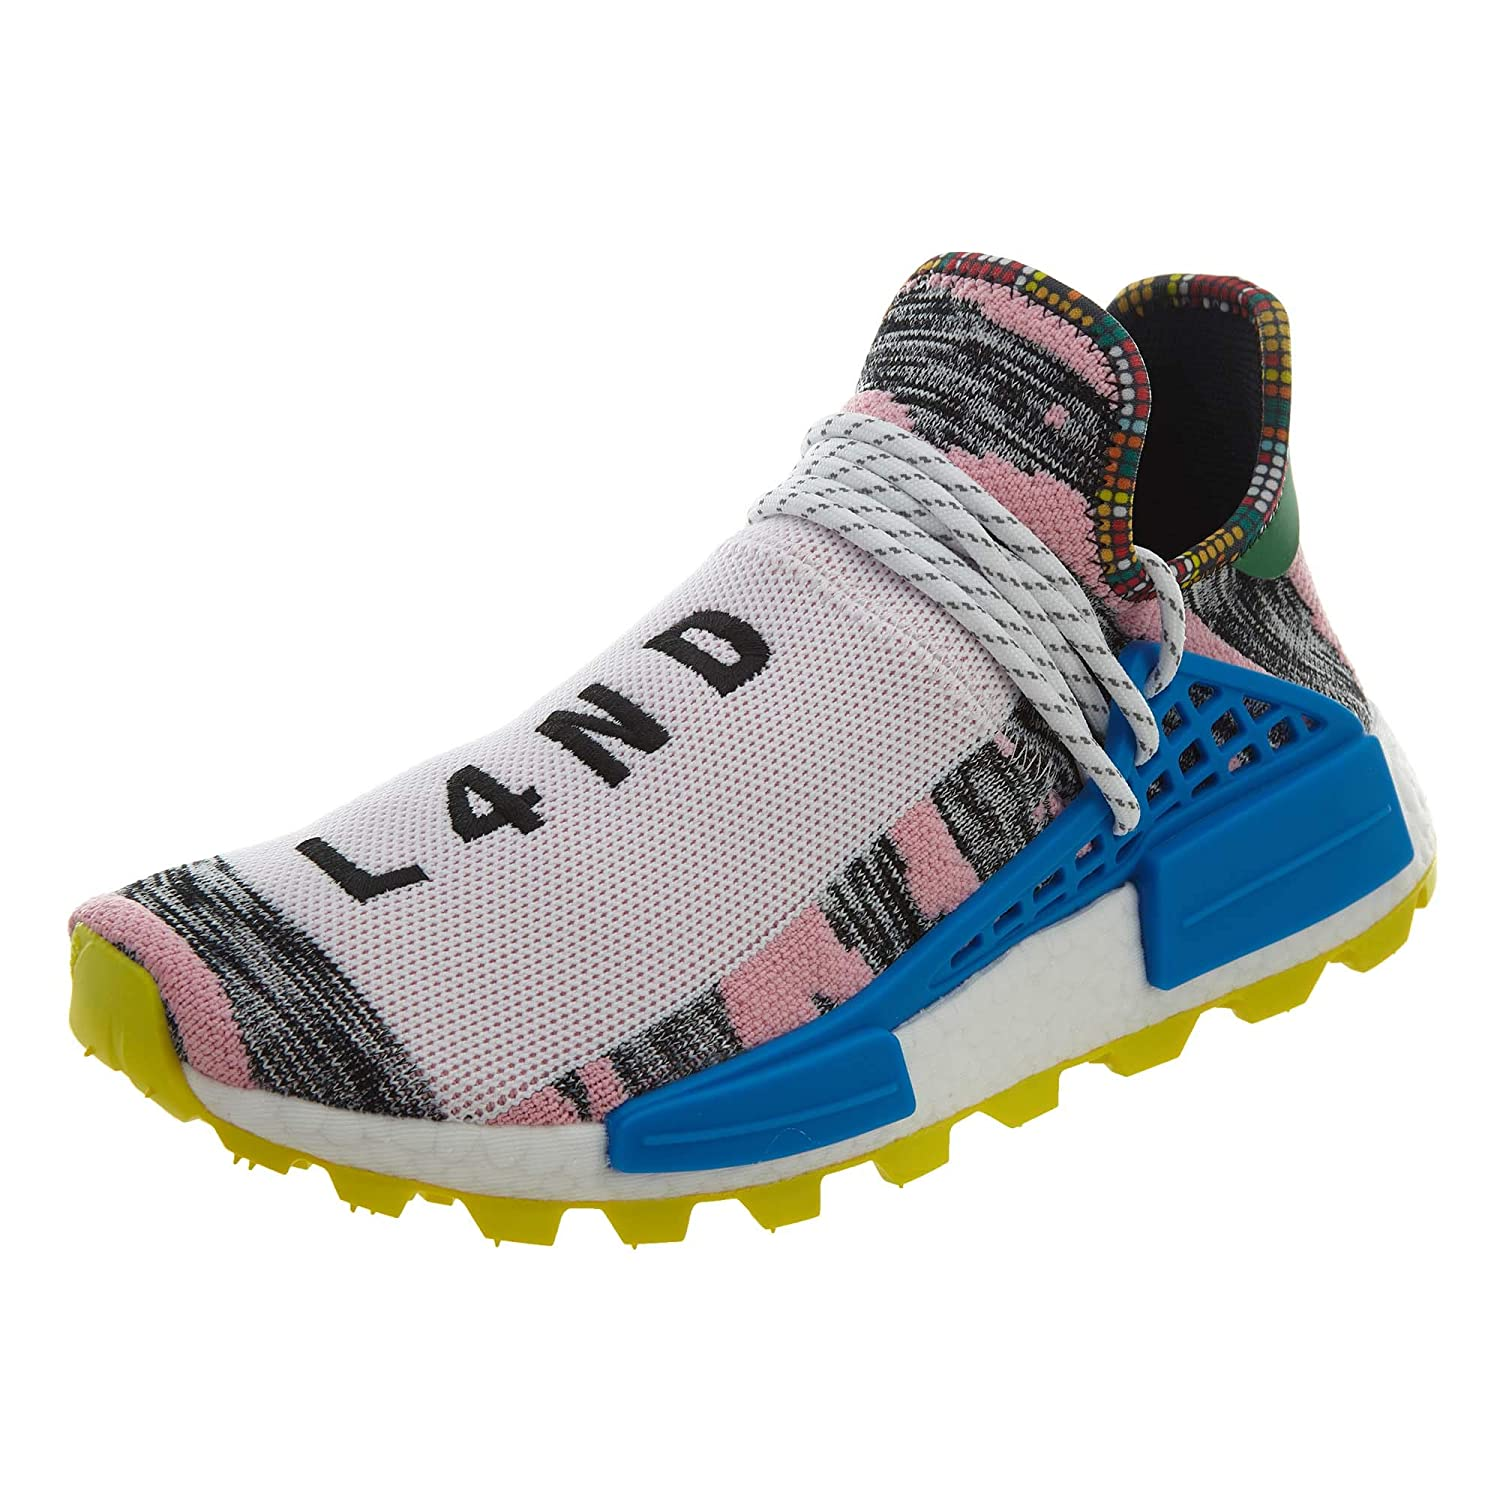 73d837f8341 Amazon.com | adidas Originals Pharrell x NMD 'Solar Pack' Shoe ...